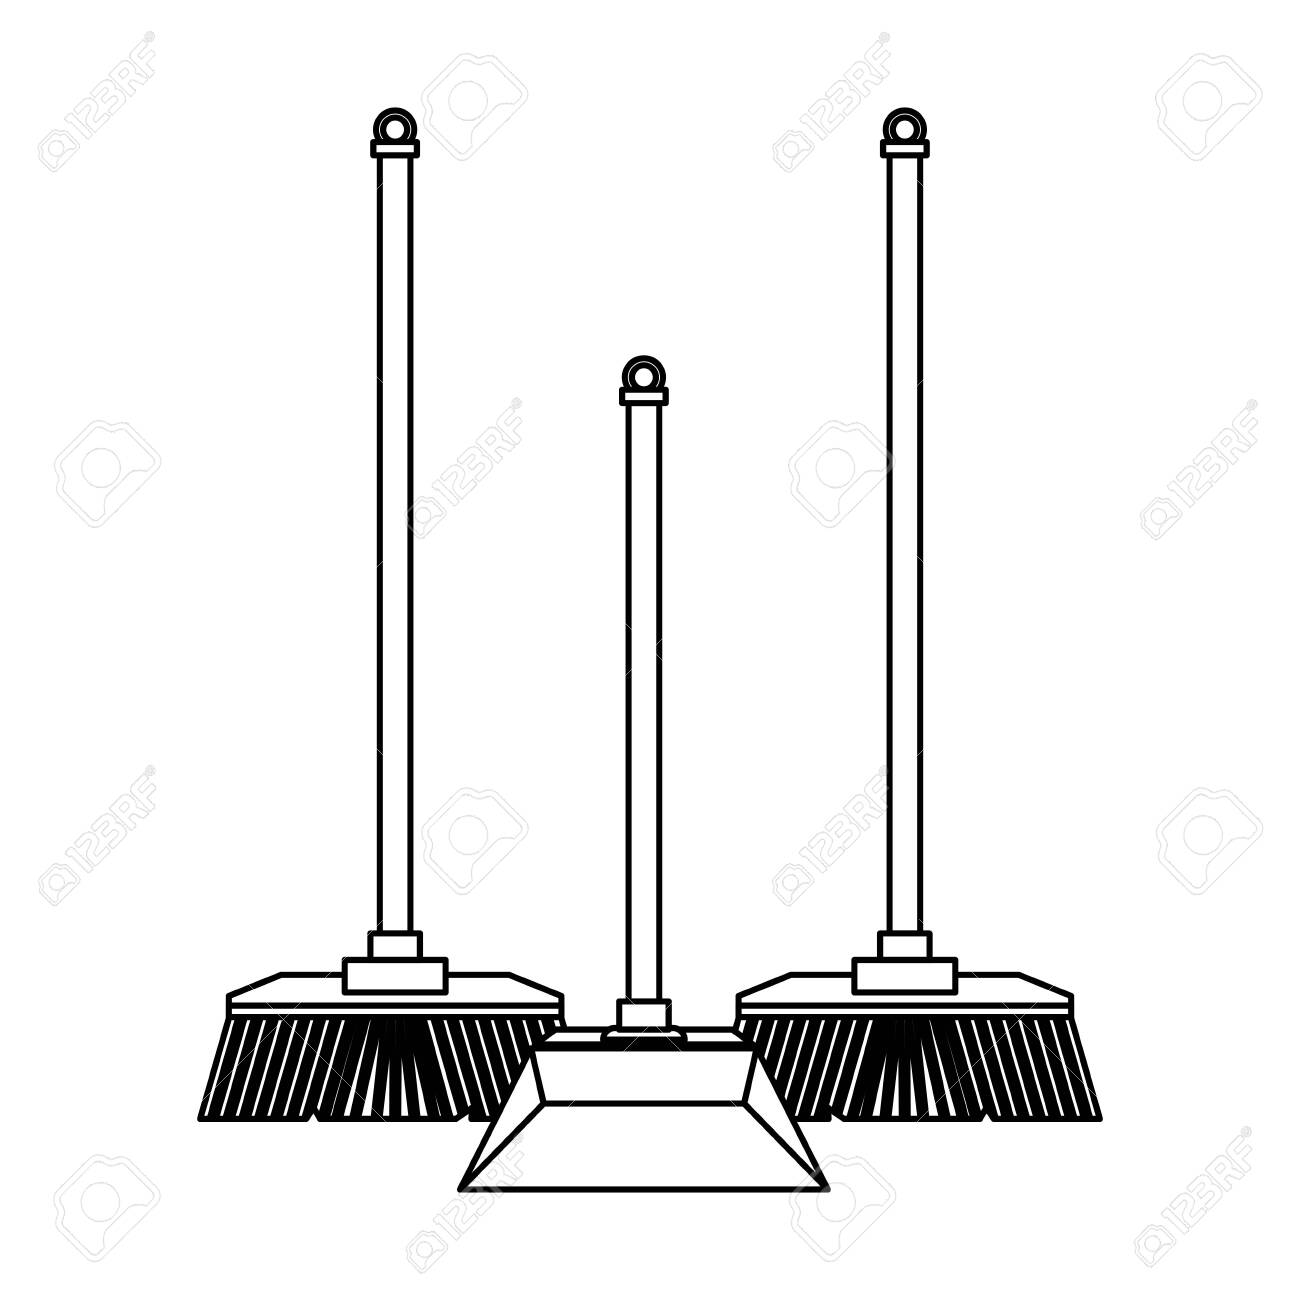 Cleaning equipment and products brooms and dustpan vector illustration graphic design. - 133856238